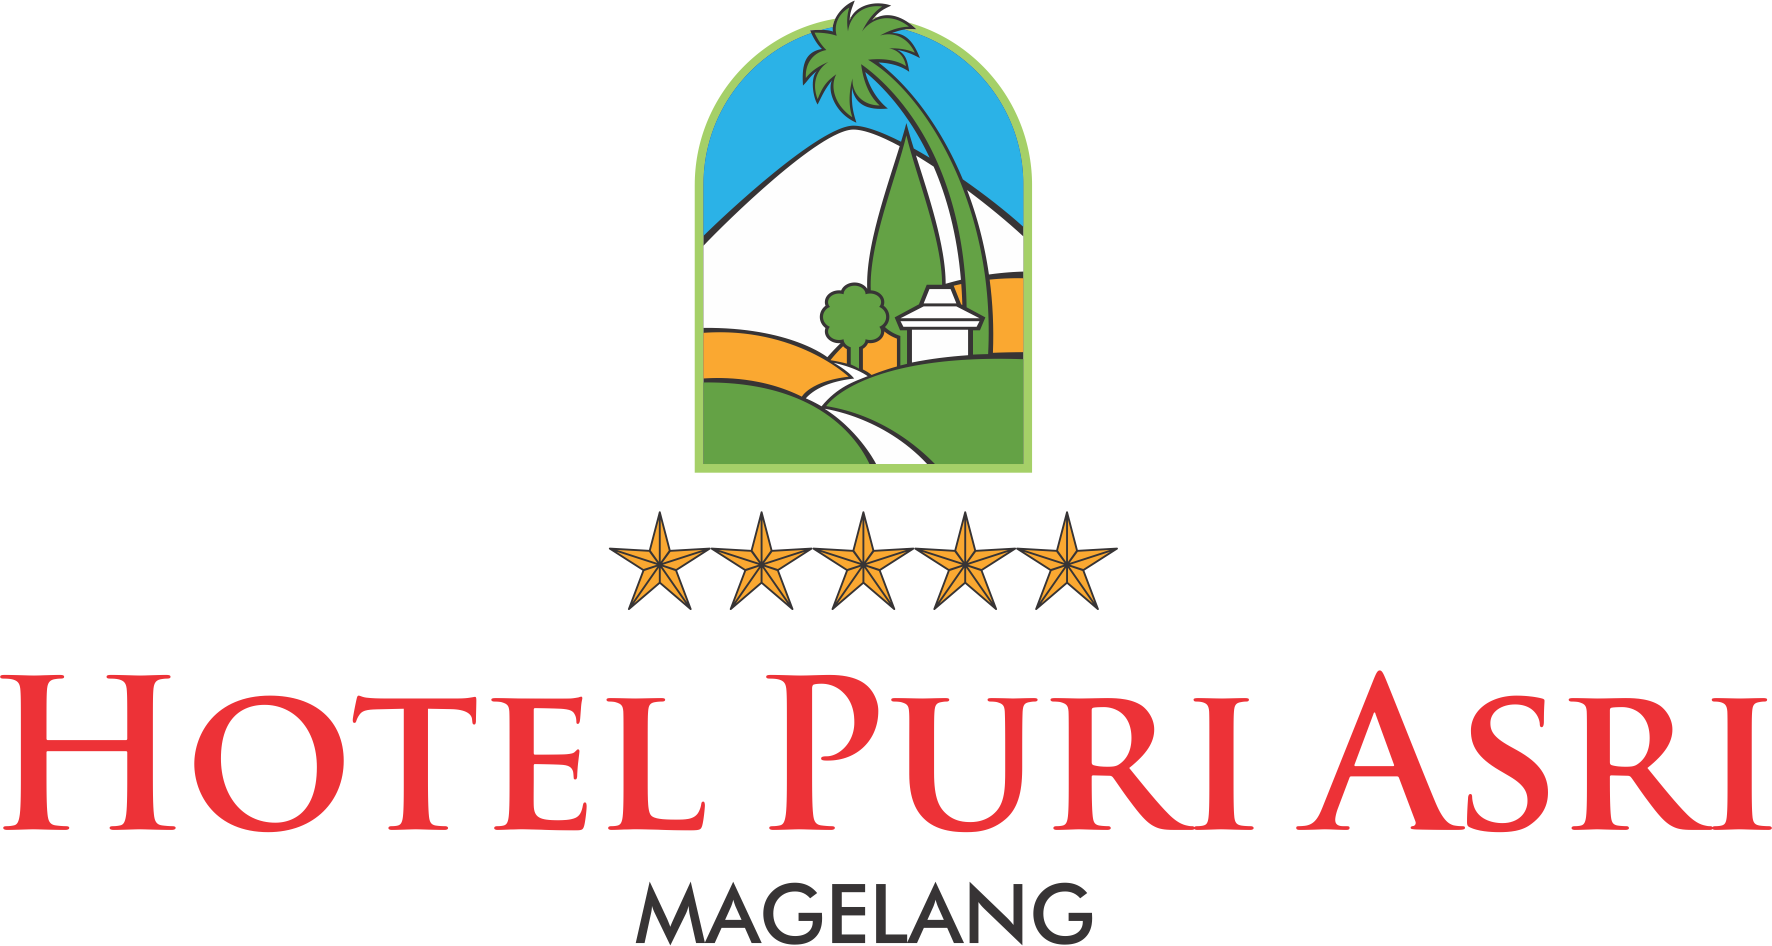 Puri Asri Hotel & Resort